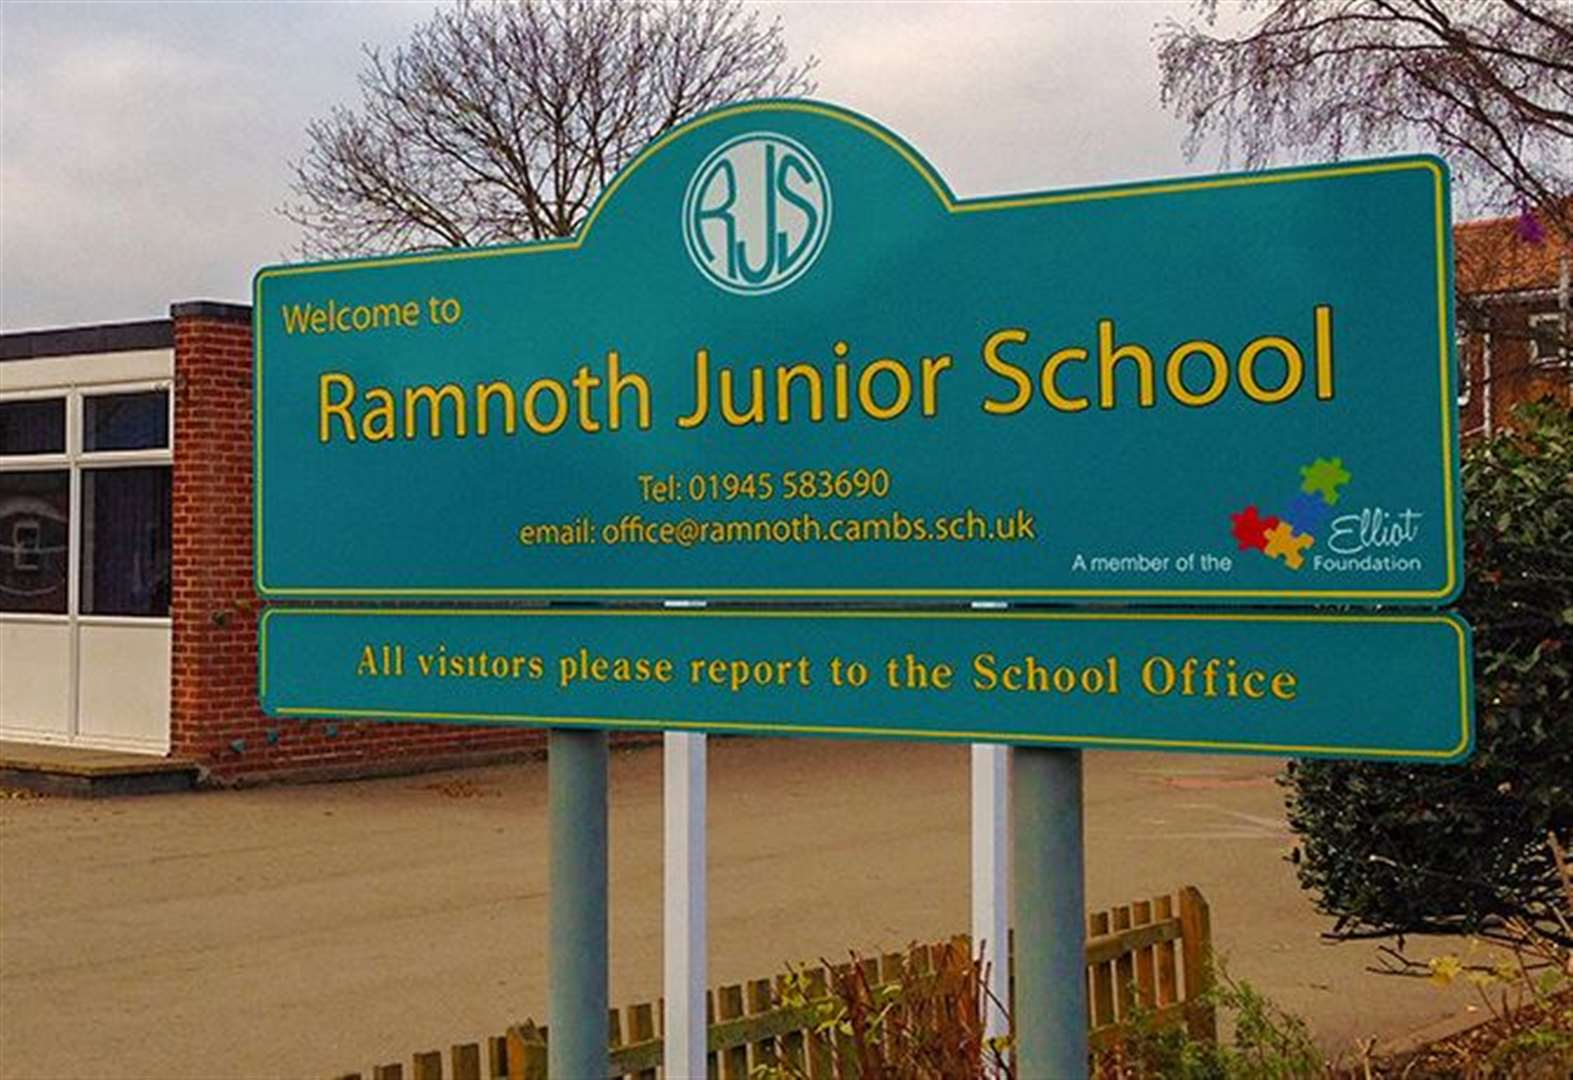 Leadership blamed as Ramnoth Junior School in Wisbech is labelled 'inadequate' and put into special measures by Ofsted